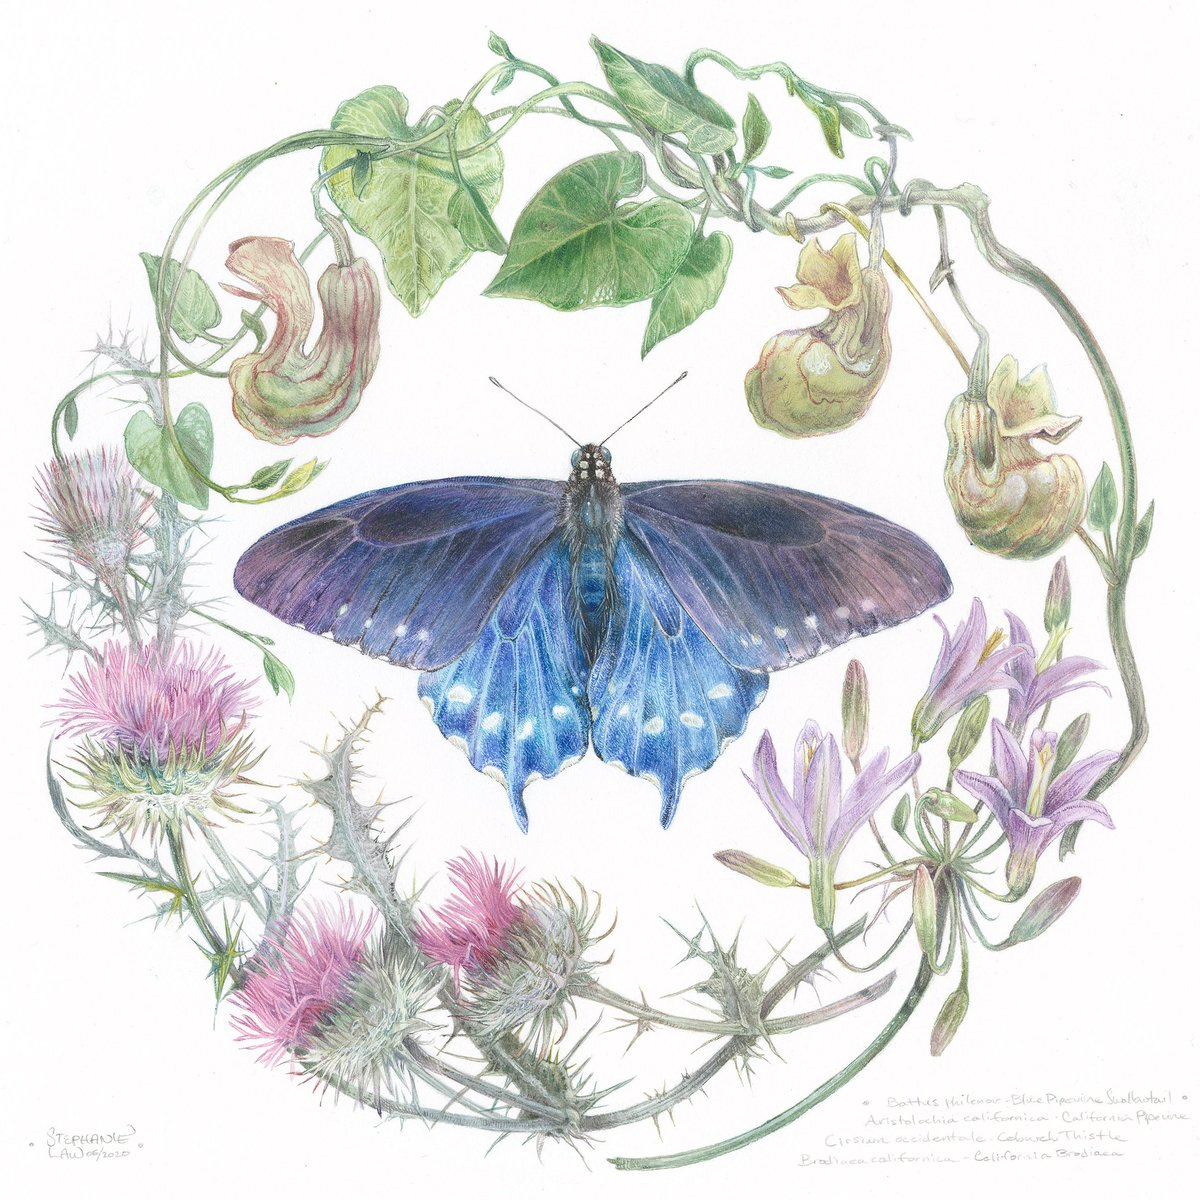 A blue pipevine swallowtail butterfly. Prints here: shadowscapes.com/image.php?line…